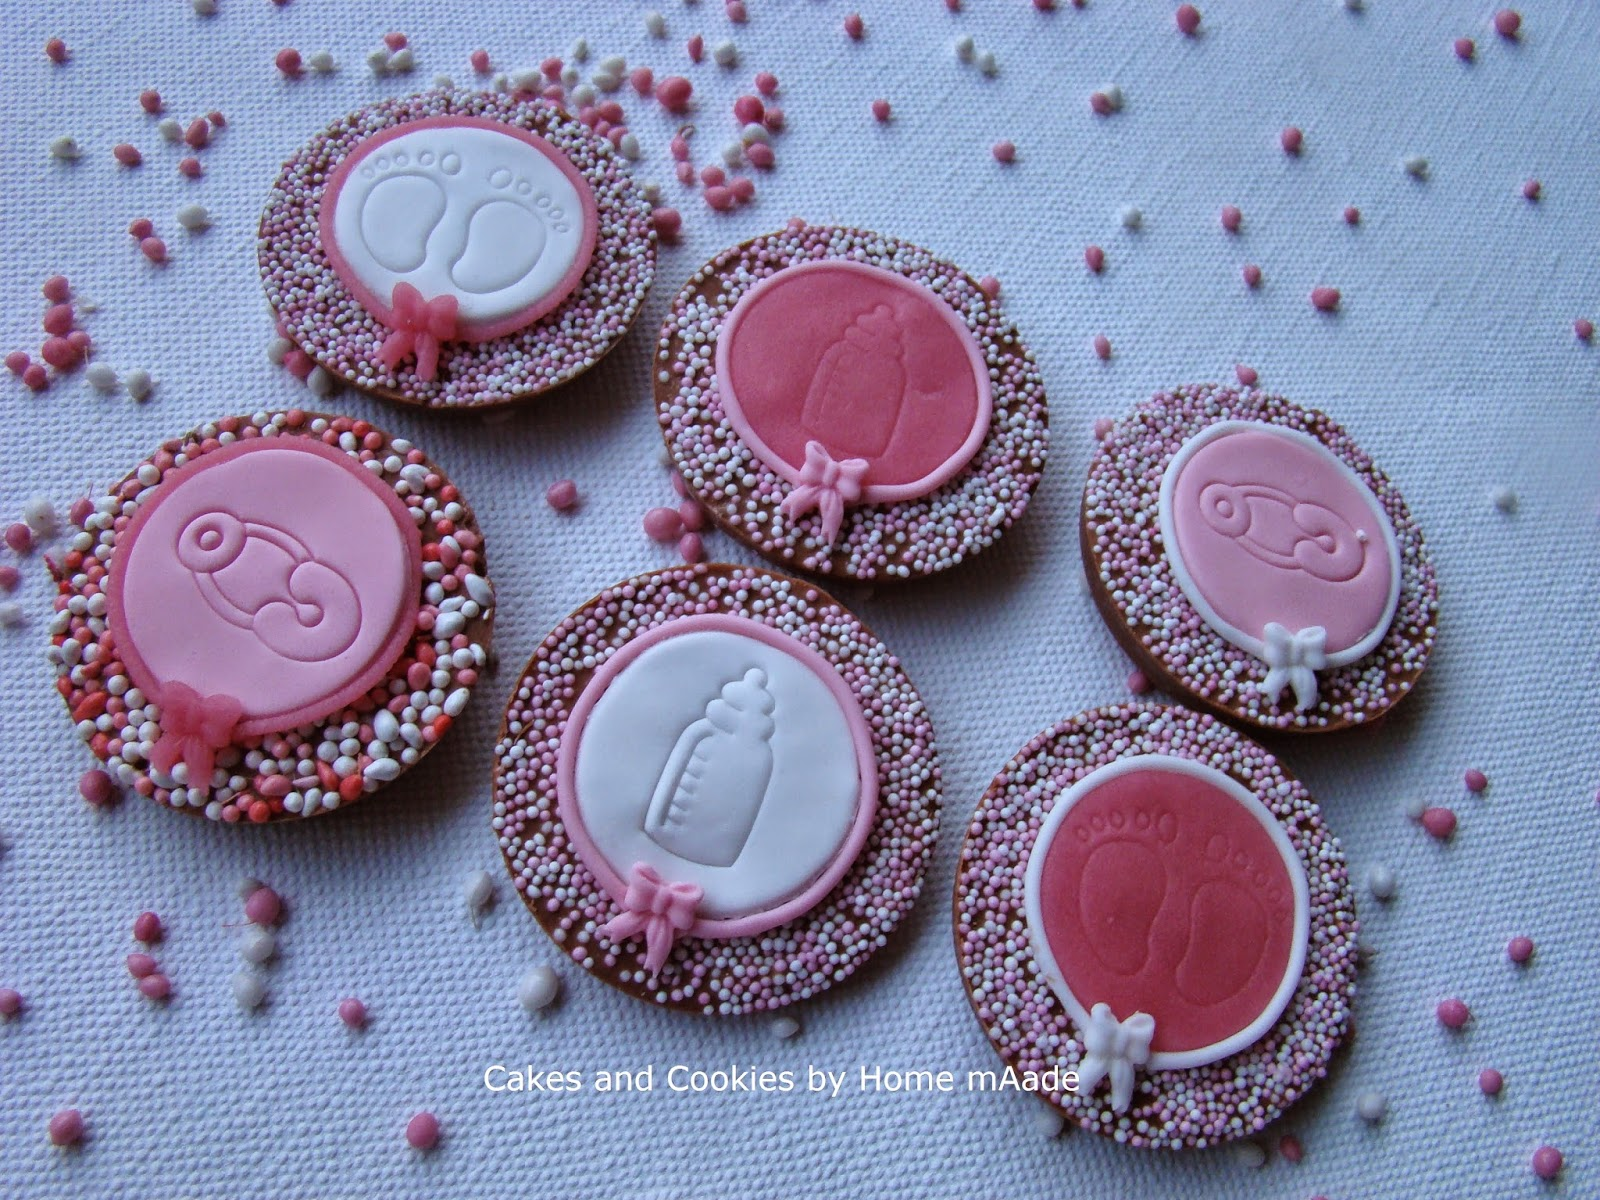 Cakes and cookies by home maade: april 2015